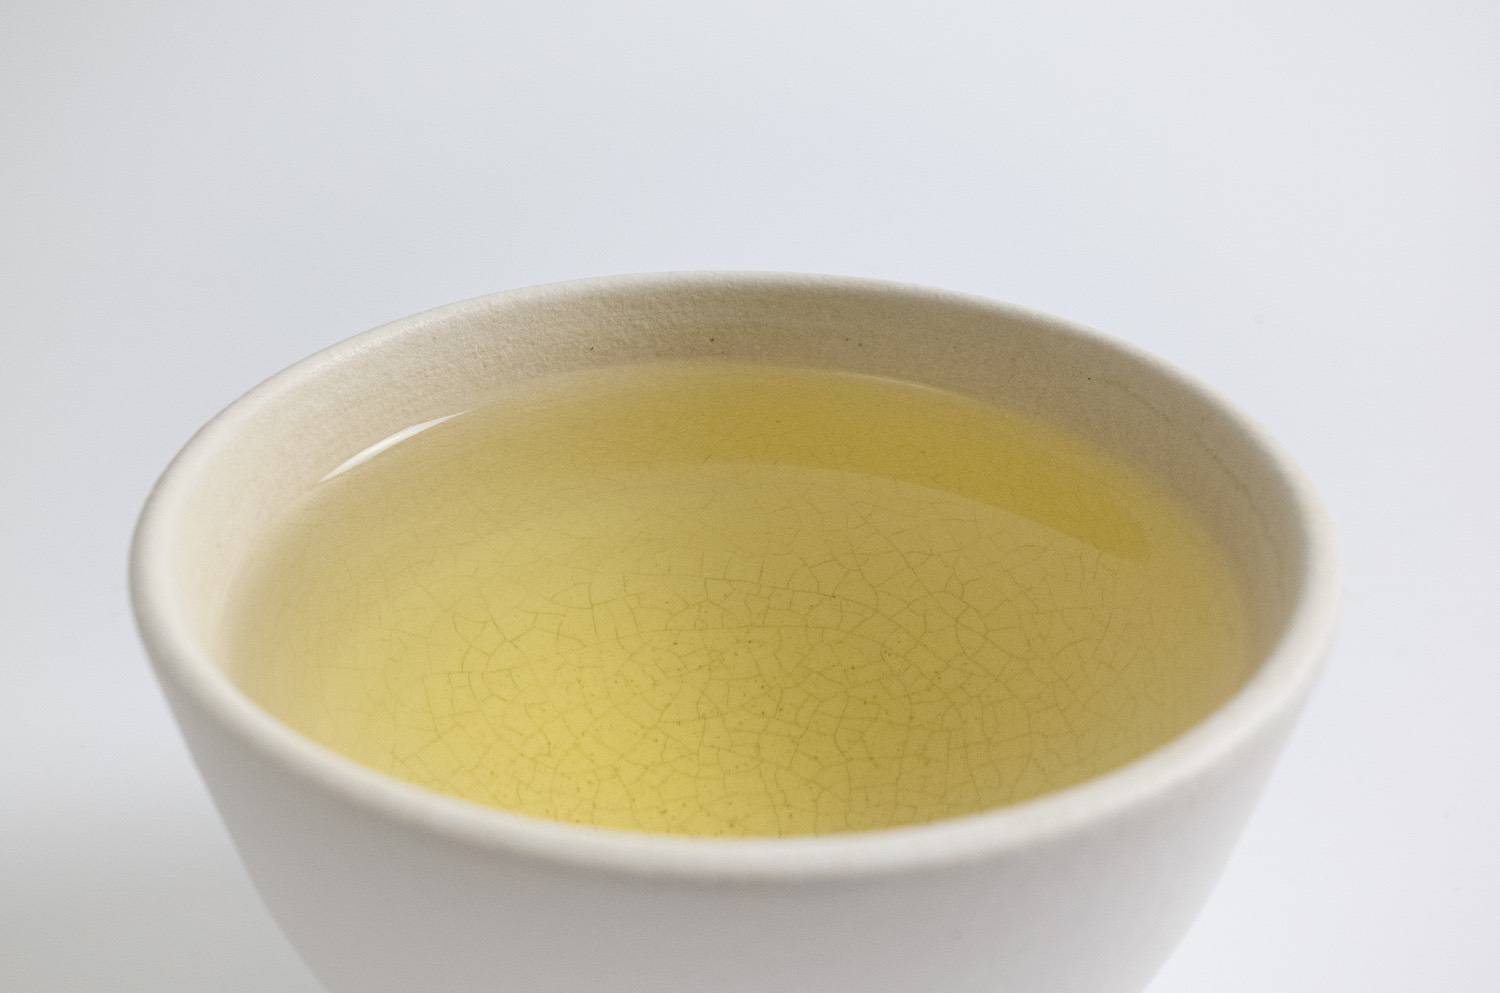 What Kinds of Ingredients/Nutrition are in Green Tea?